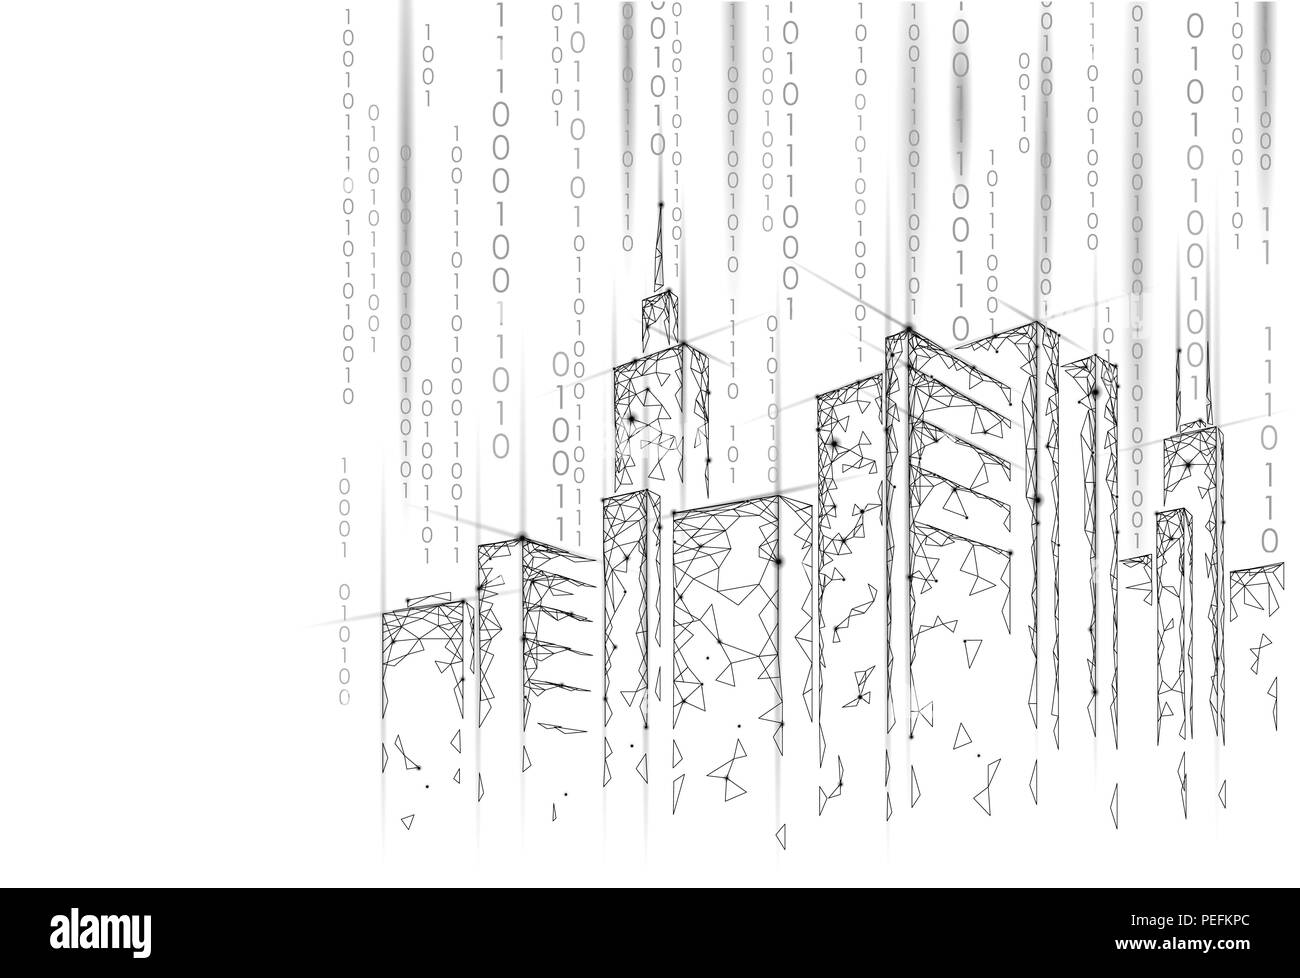 Low poly smart city 3D wire mesh. Intelligent building automation system business concept. Binary code number data flow. Architecture urban cityscape technology sketch banner vector illustration - Stock Image